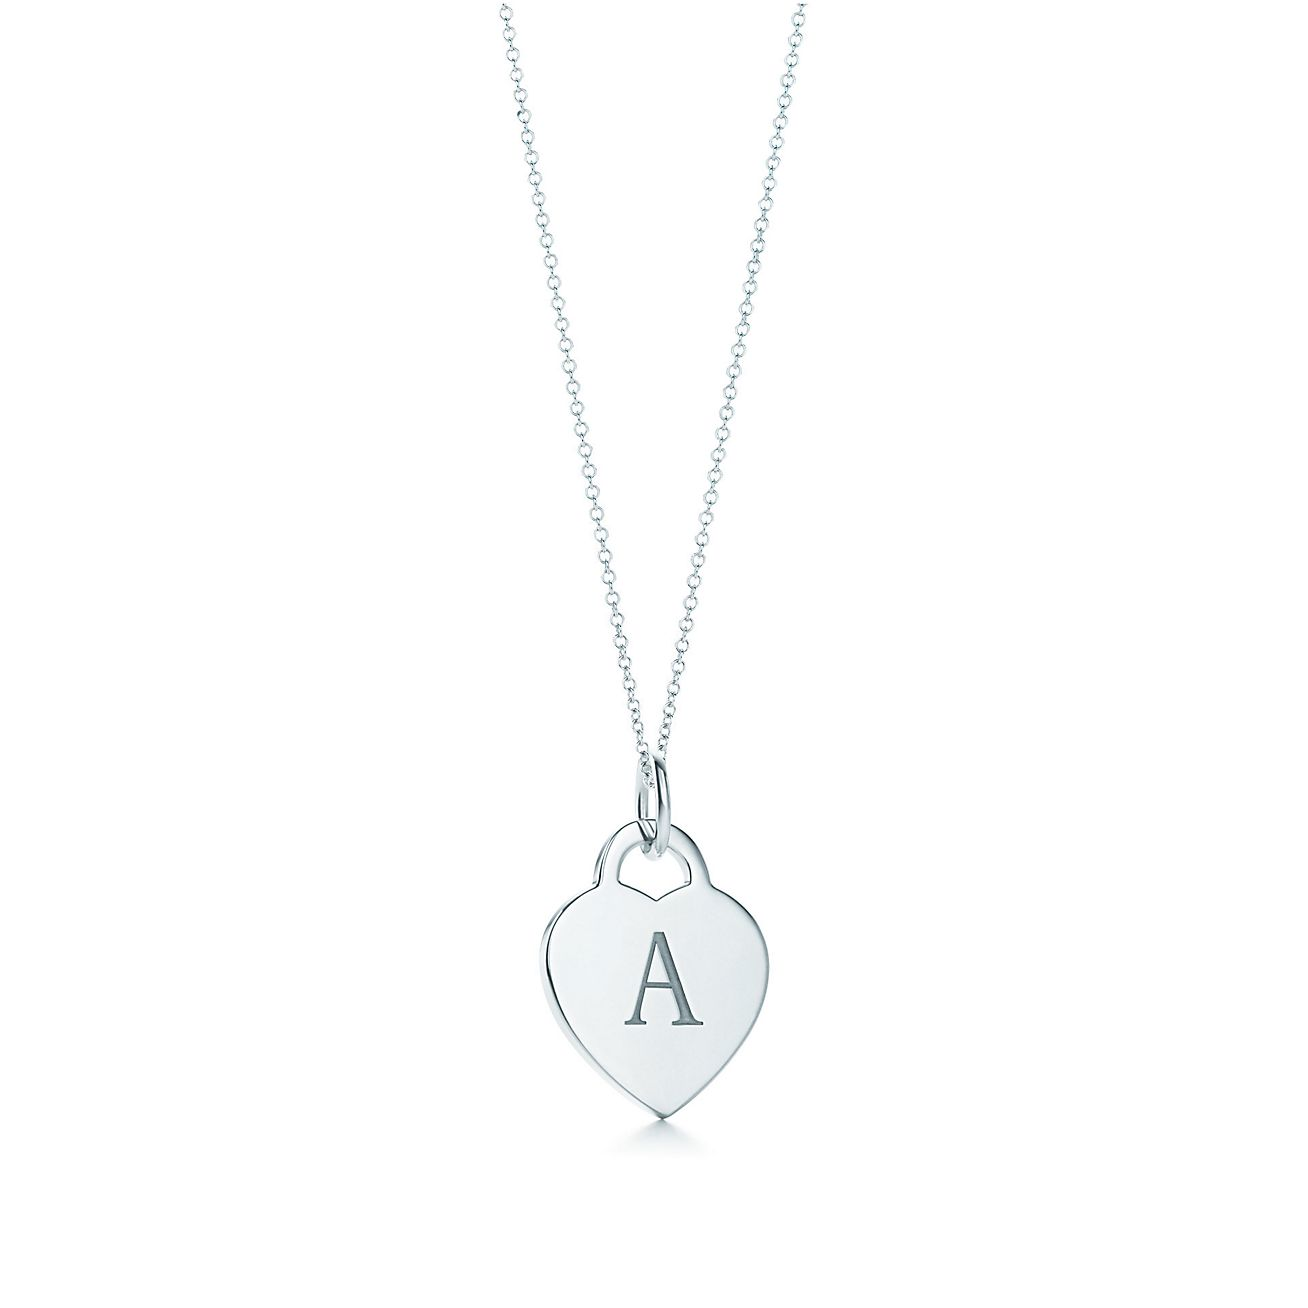 Tiffany Charms alphabet charm in sterling silver Letters A-Z available - Size P Tiffany & Co.